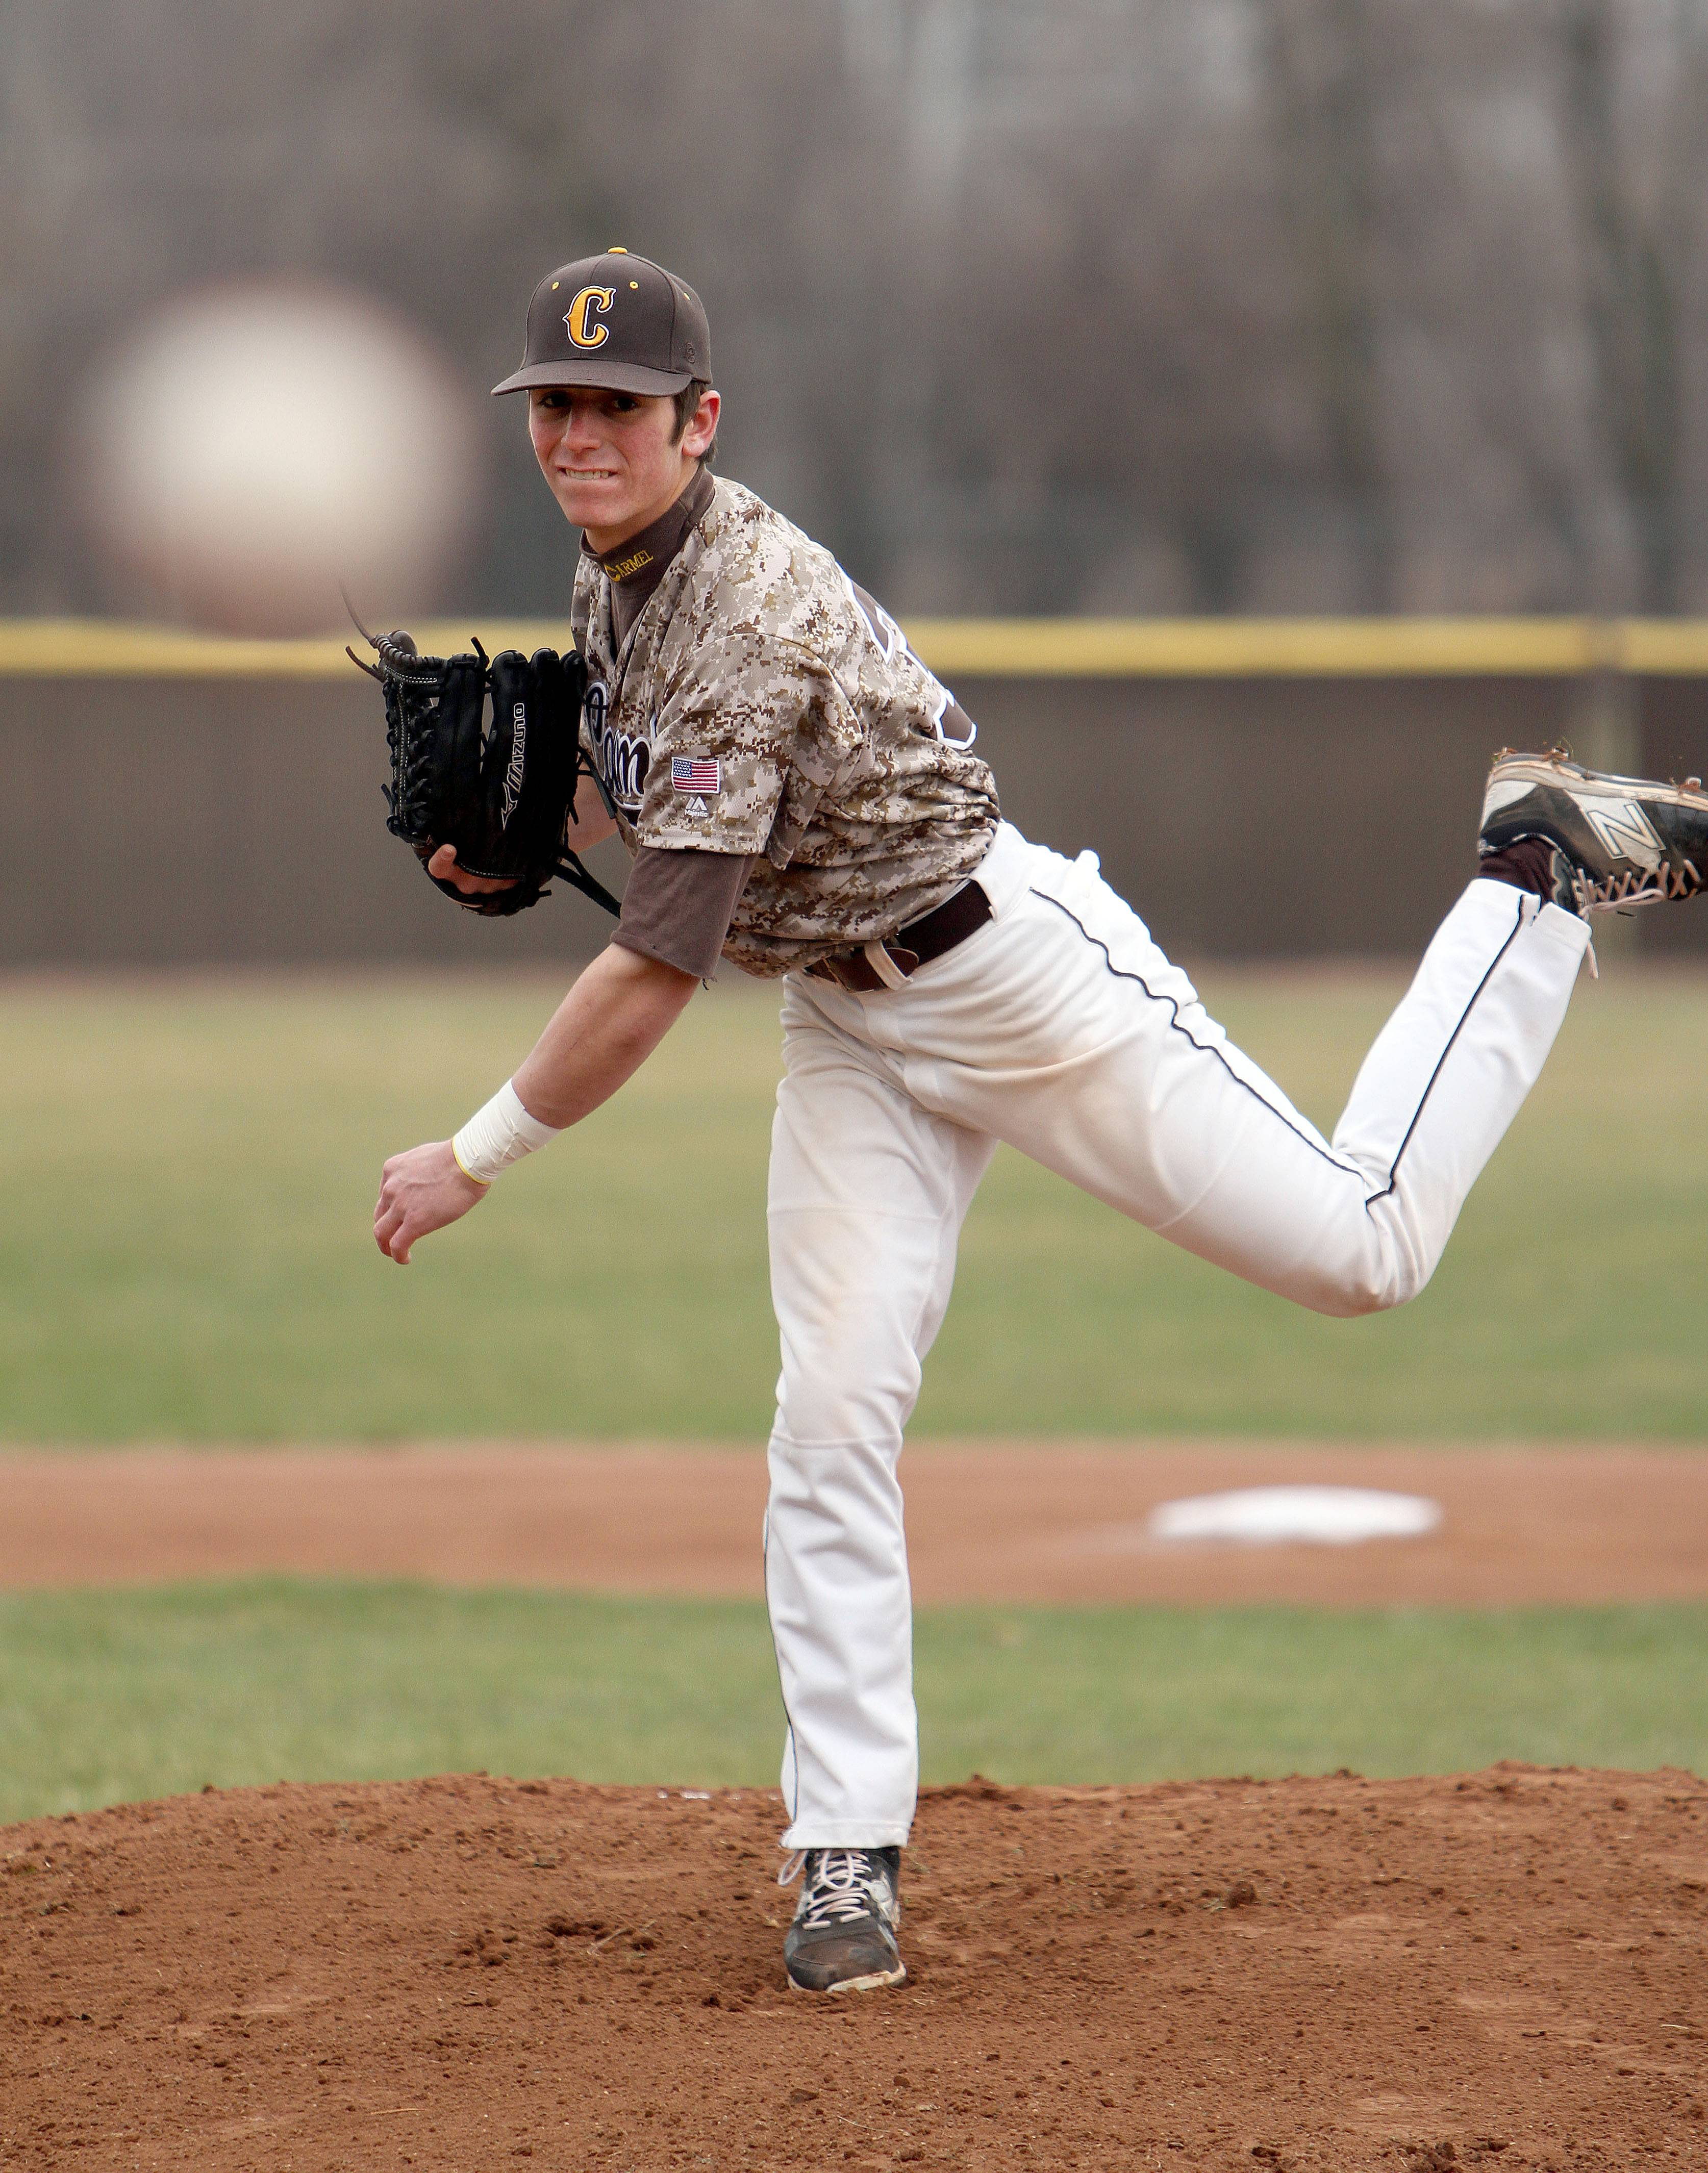 Carmel's Joe Santoro displays his left-handed delivery; he can also pitch right-handed.